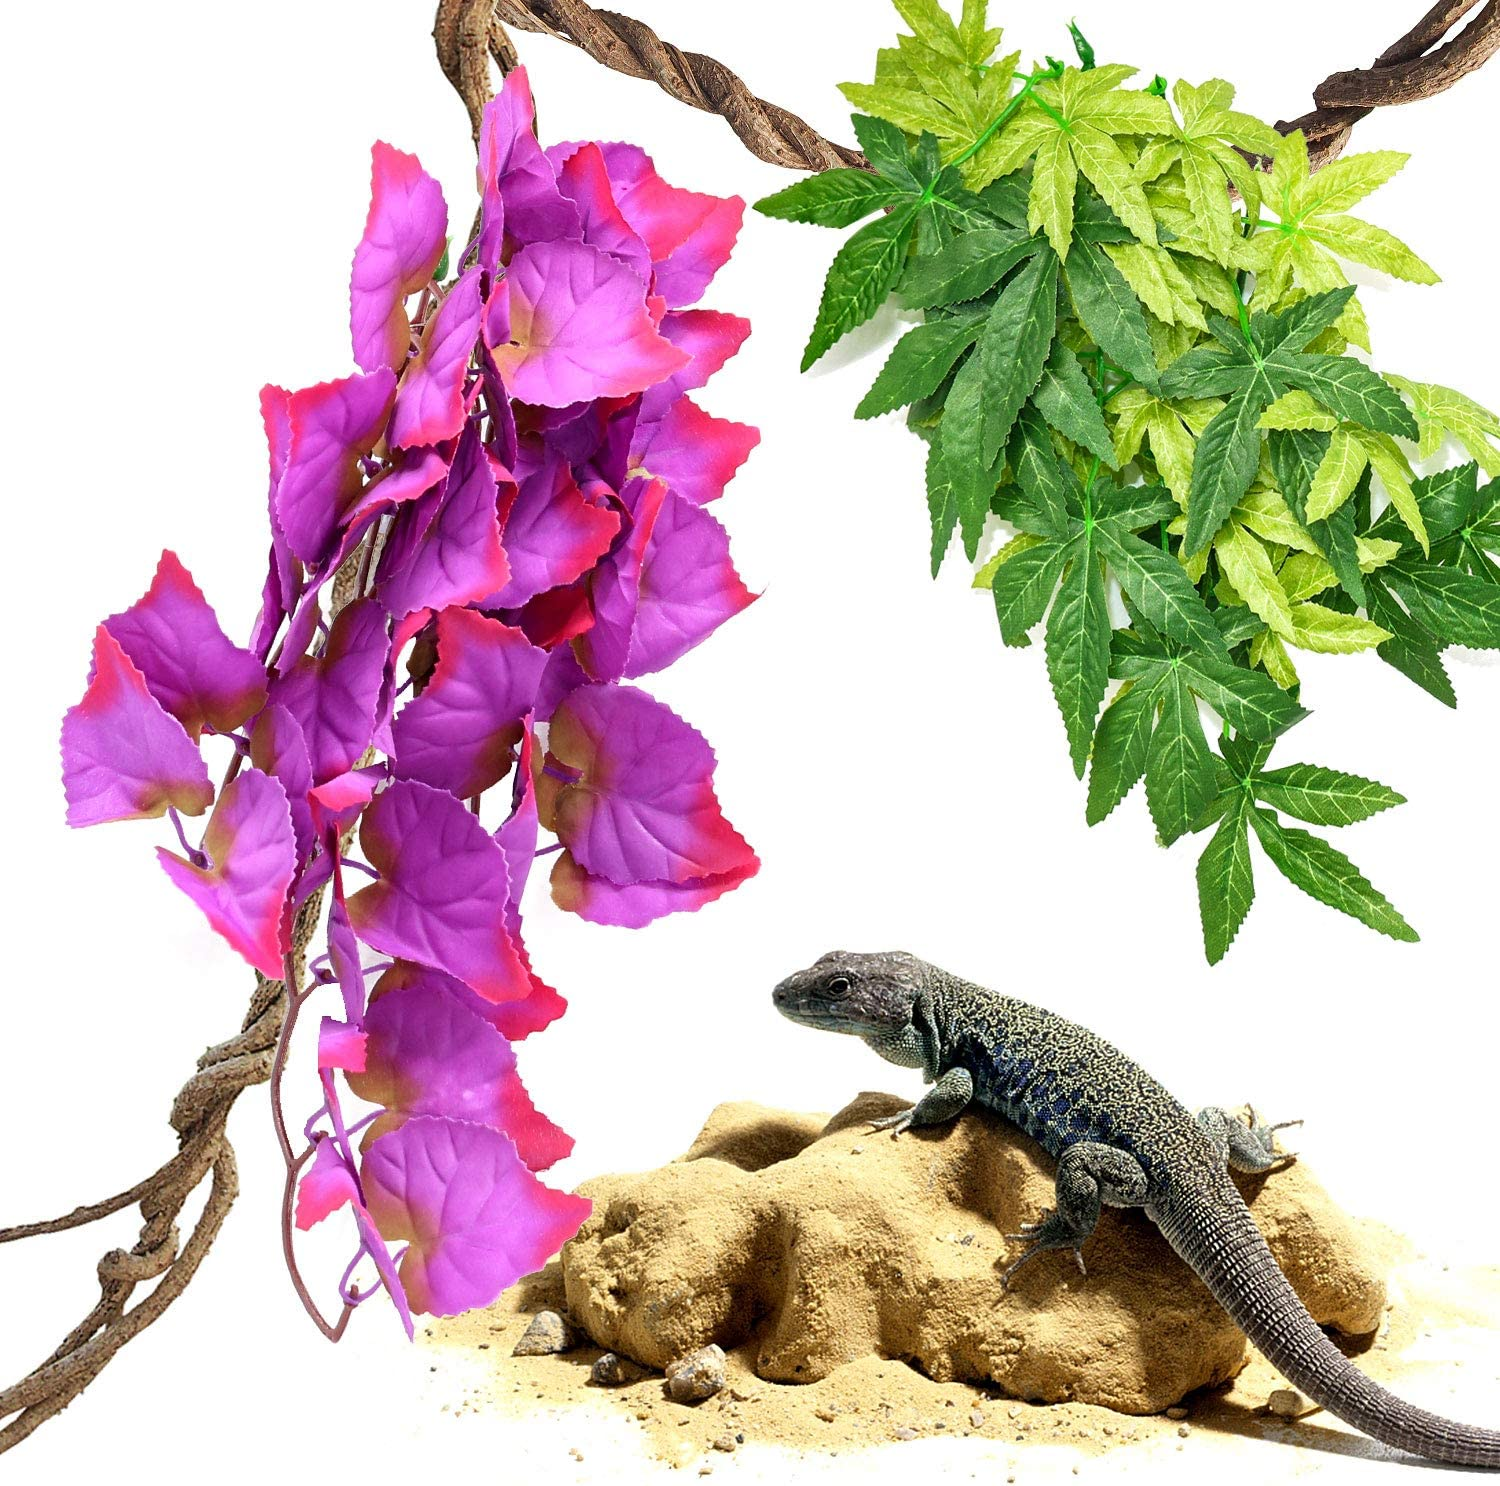 HYLYUN Reptile Plants 3 Packs Hanging Silk Terrarium Plant with Suction Cup for Bearded Dragons Lizards Geckos Snake Tank Decorations